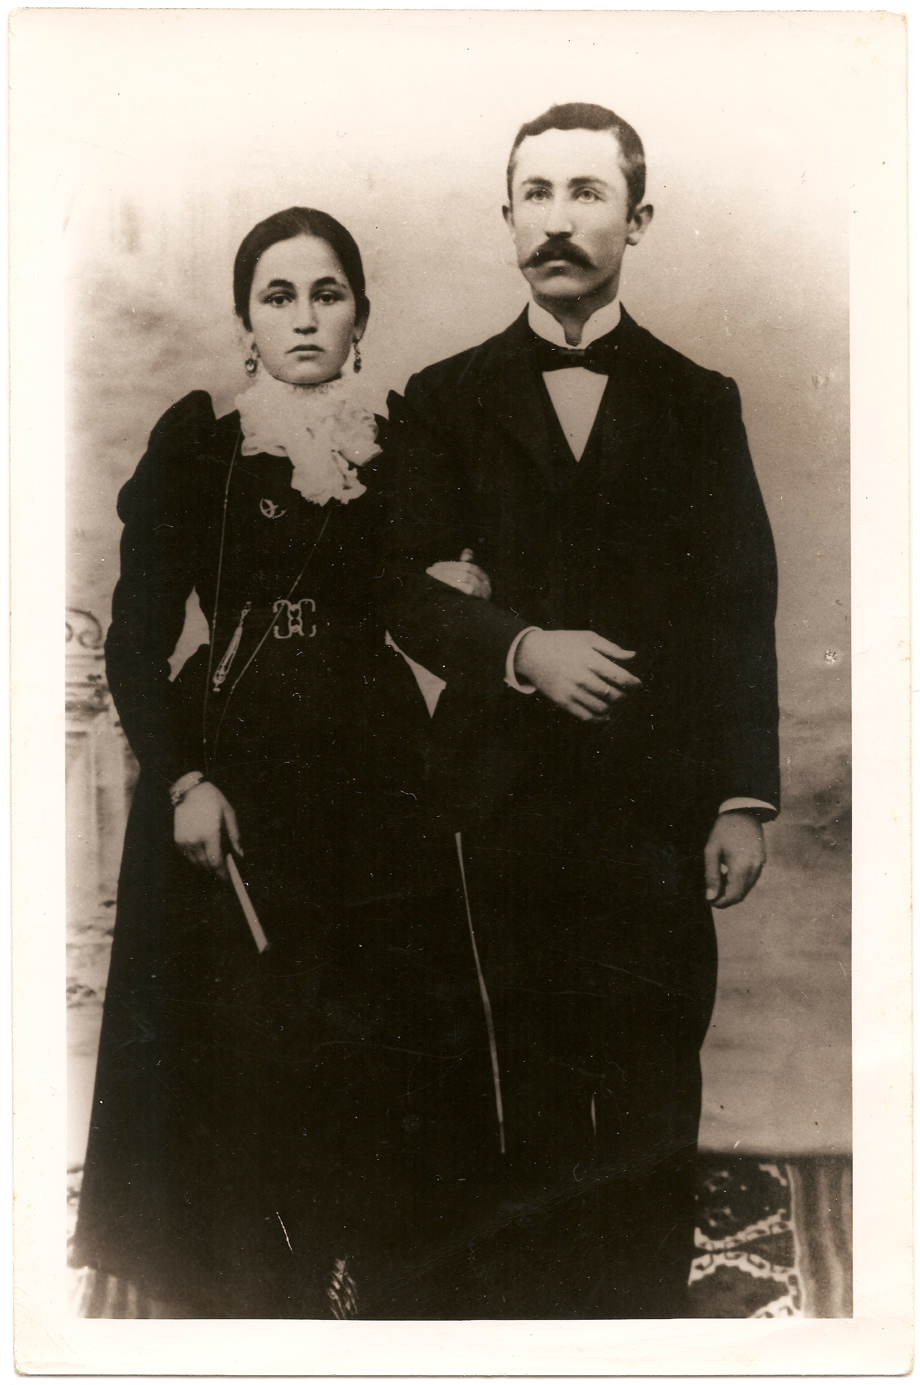 Avedis Kasardjian (born 1871) and his wife Giulenya